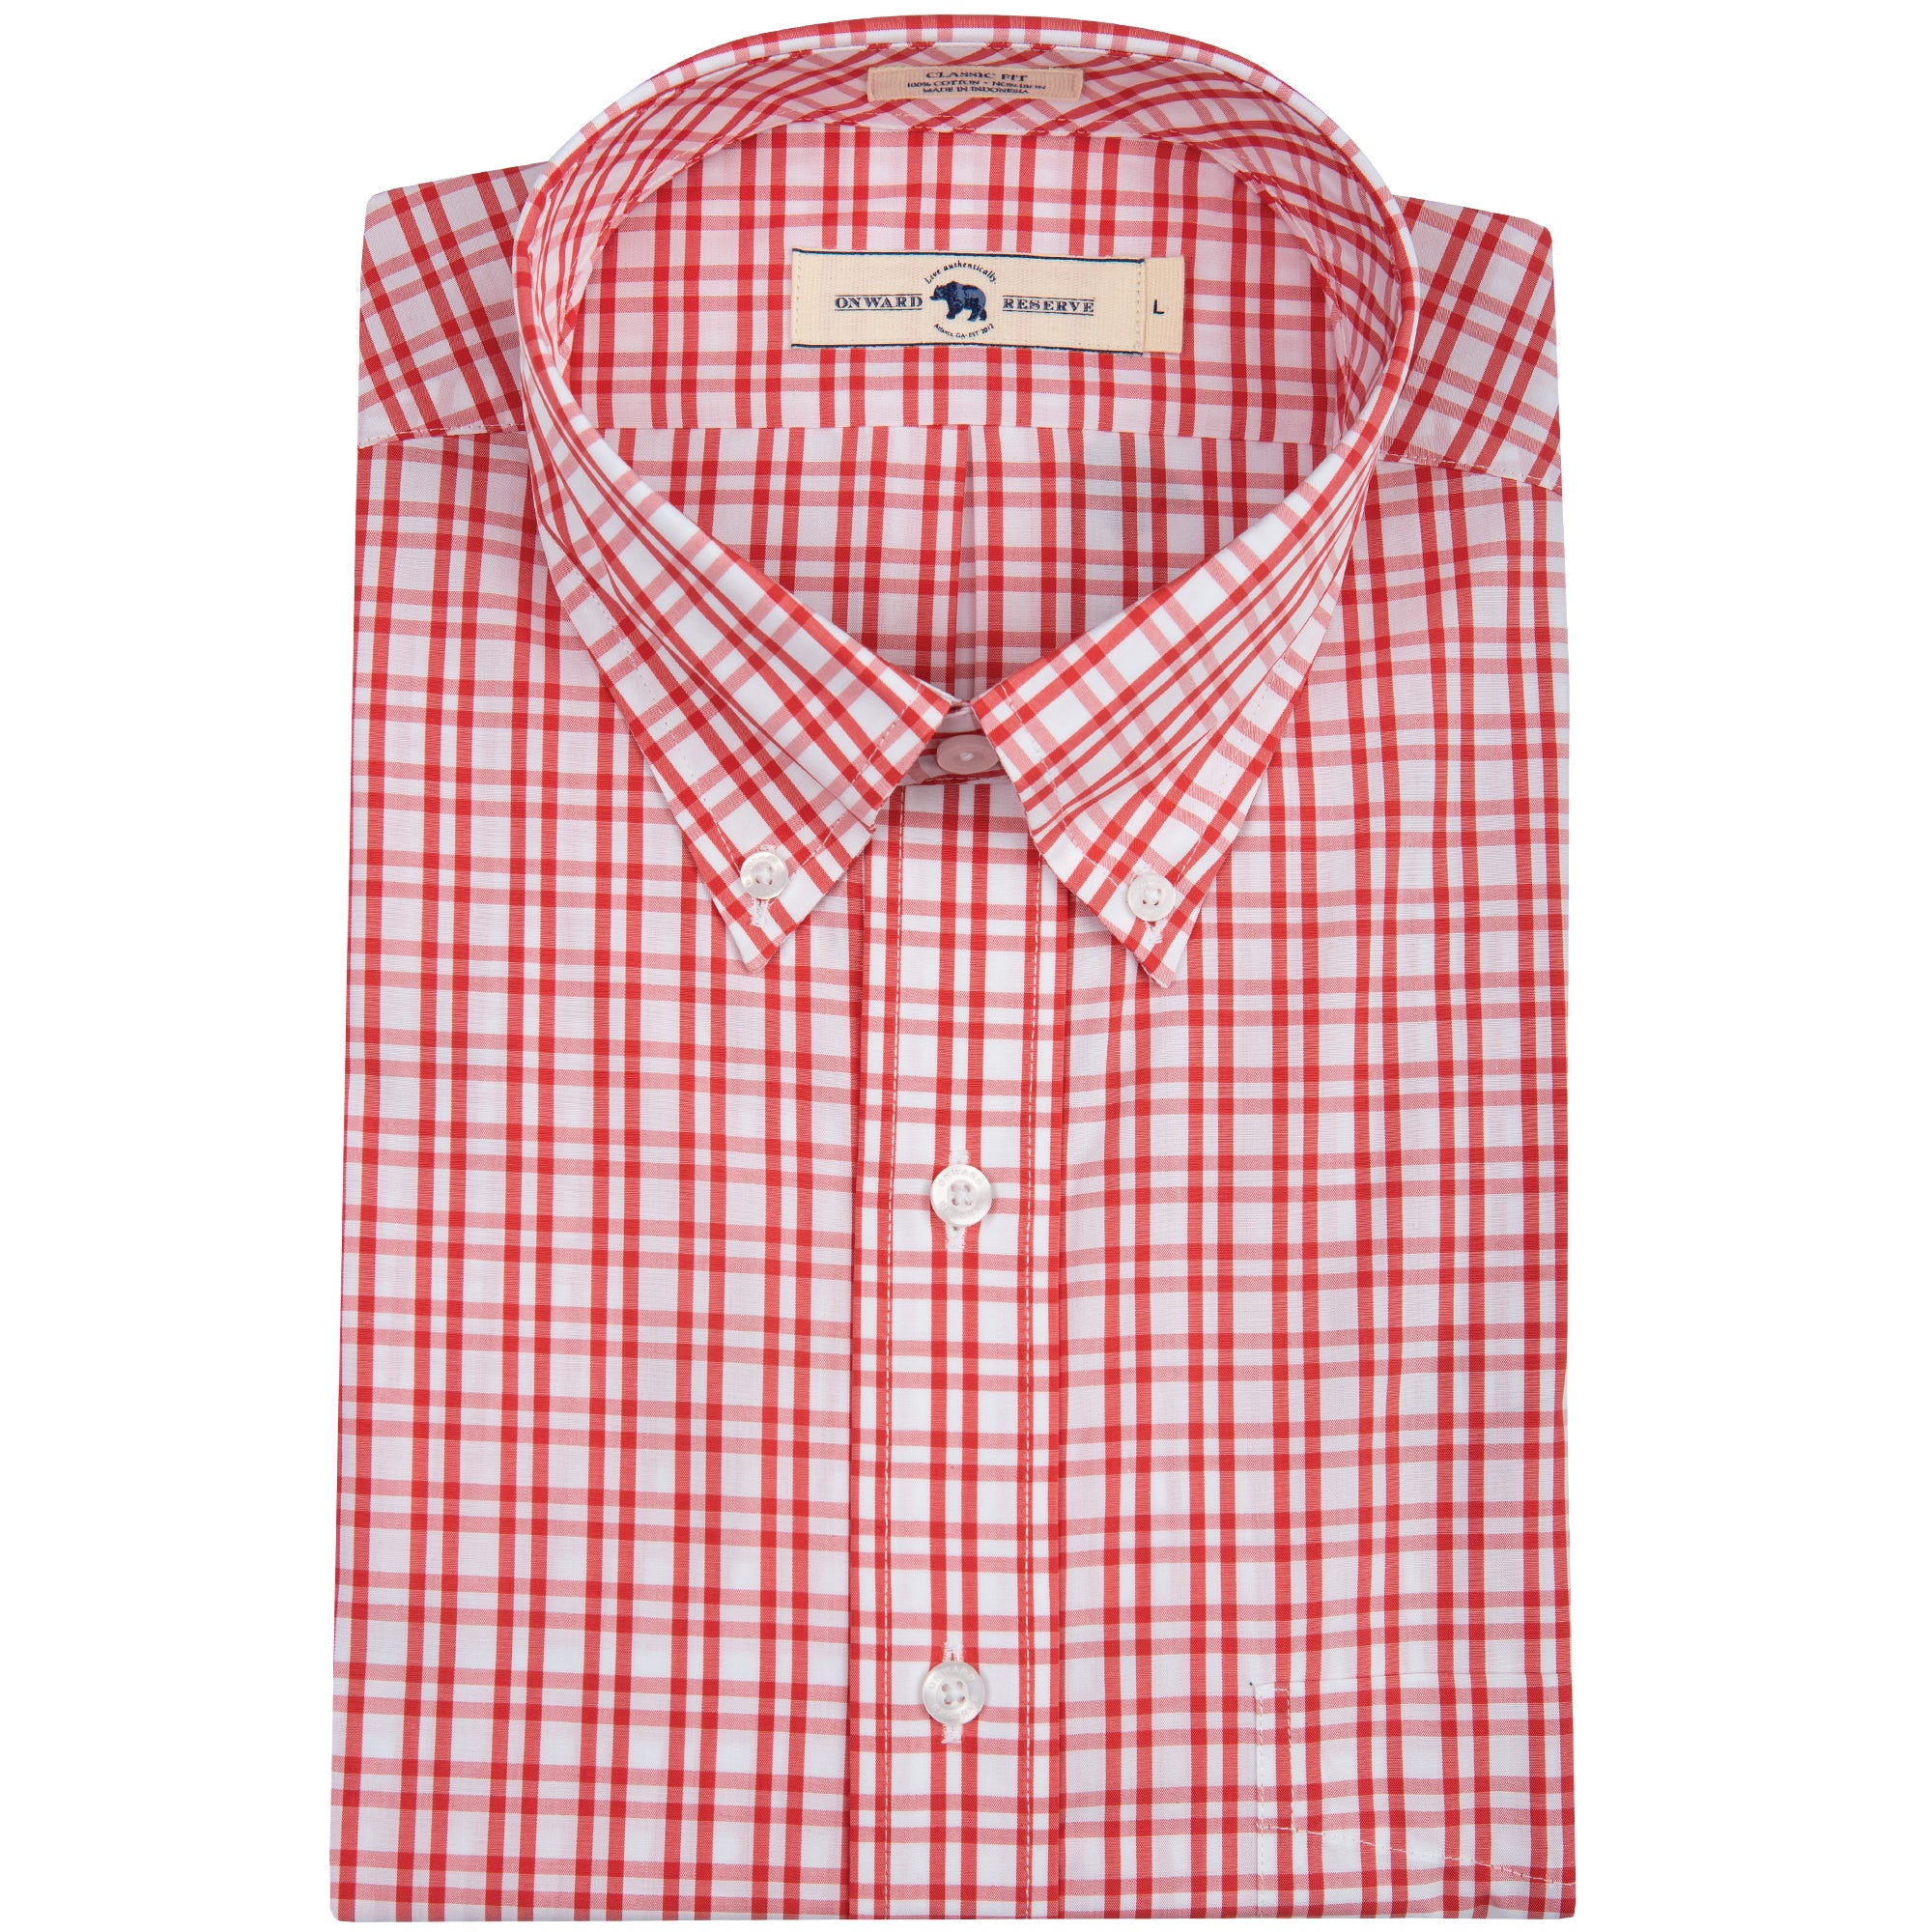 Mirada Classic Fit Button Down - OnwardReserve